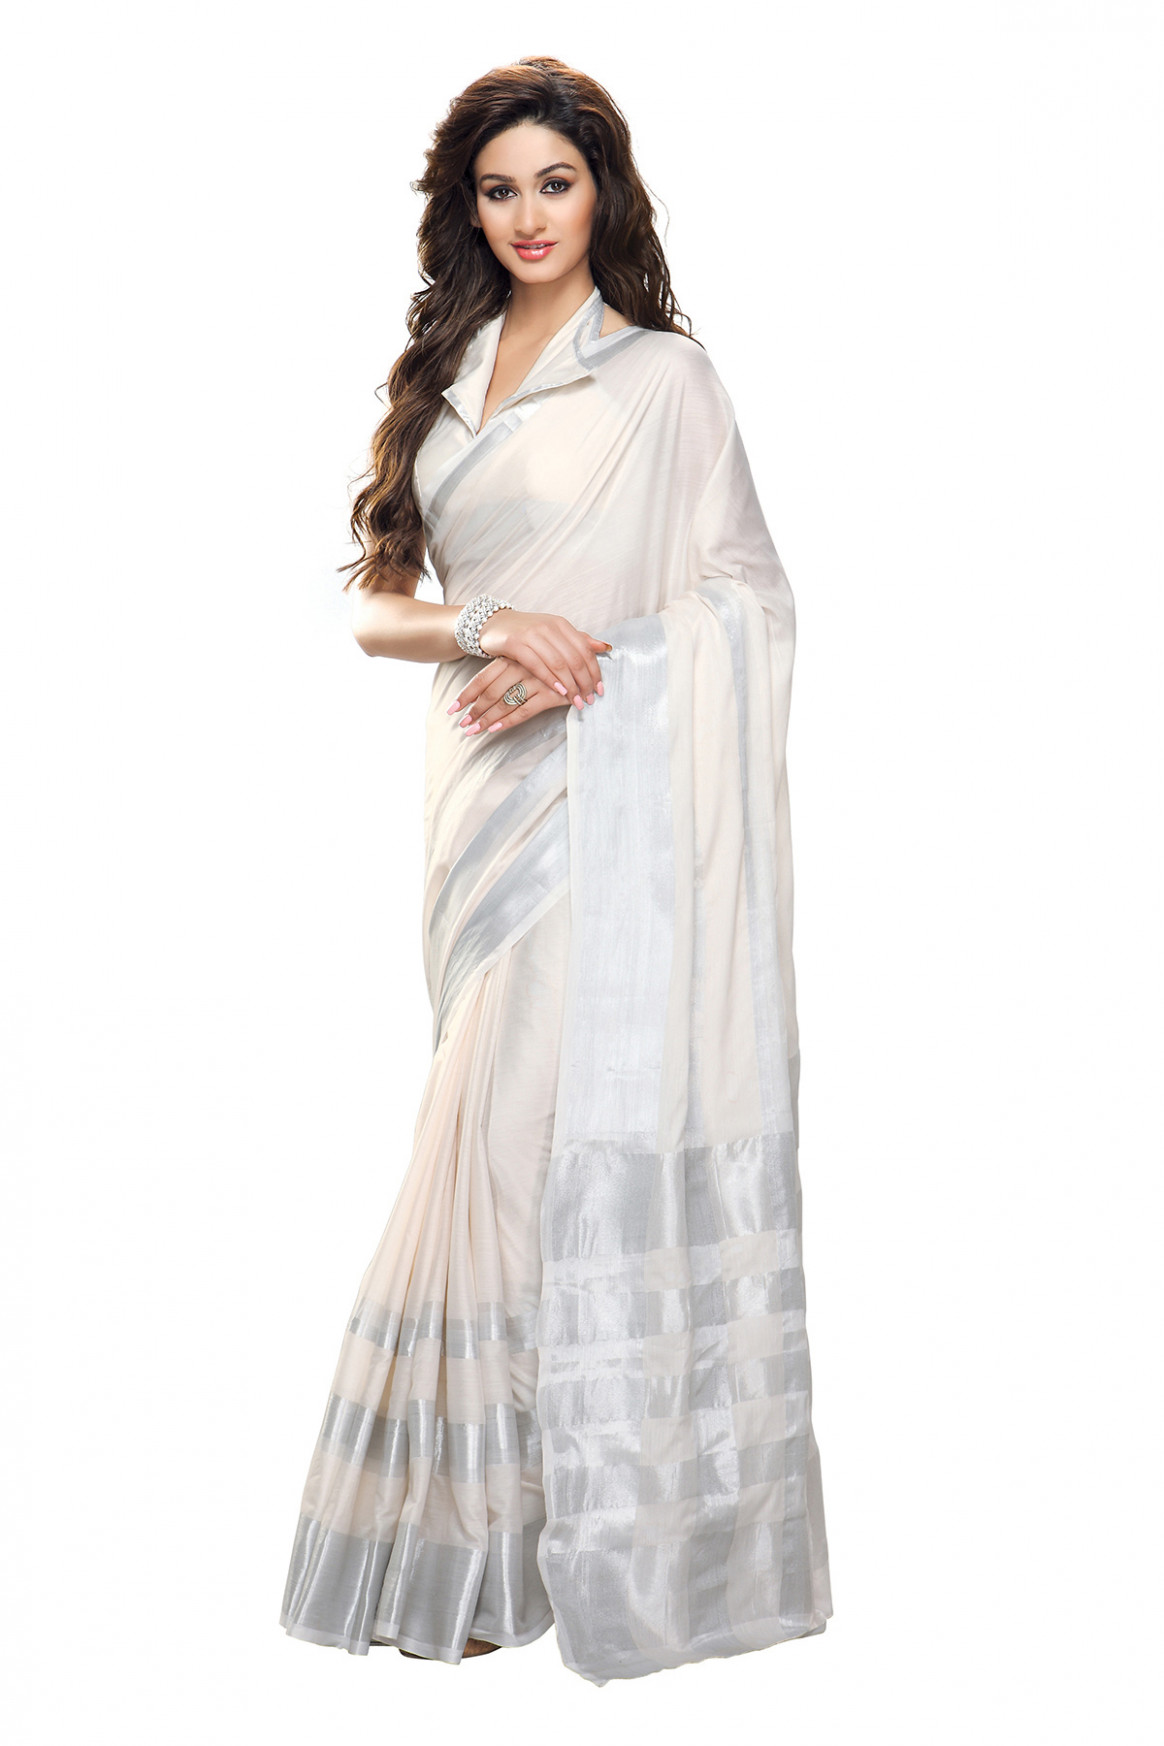 Buy White and Silver plain cotton saree with blouse Online